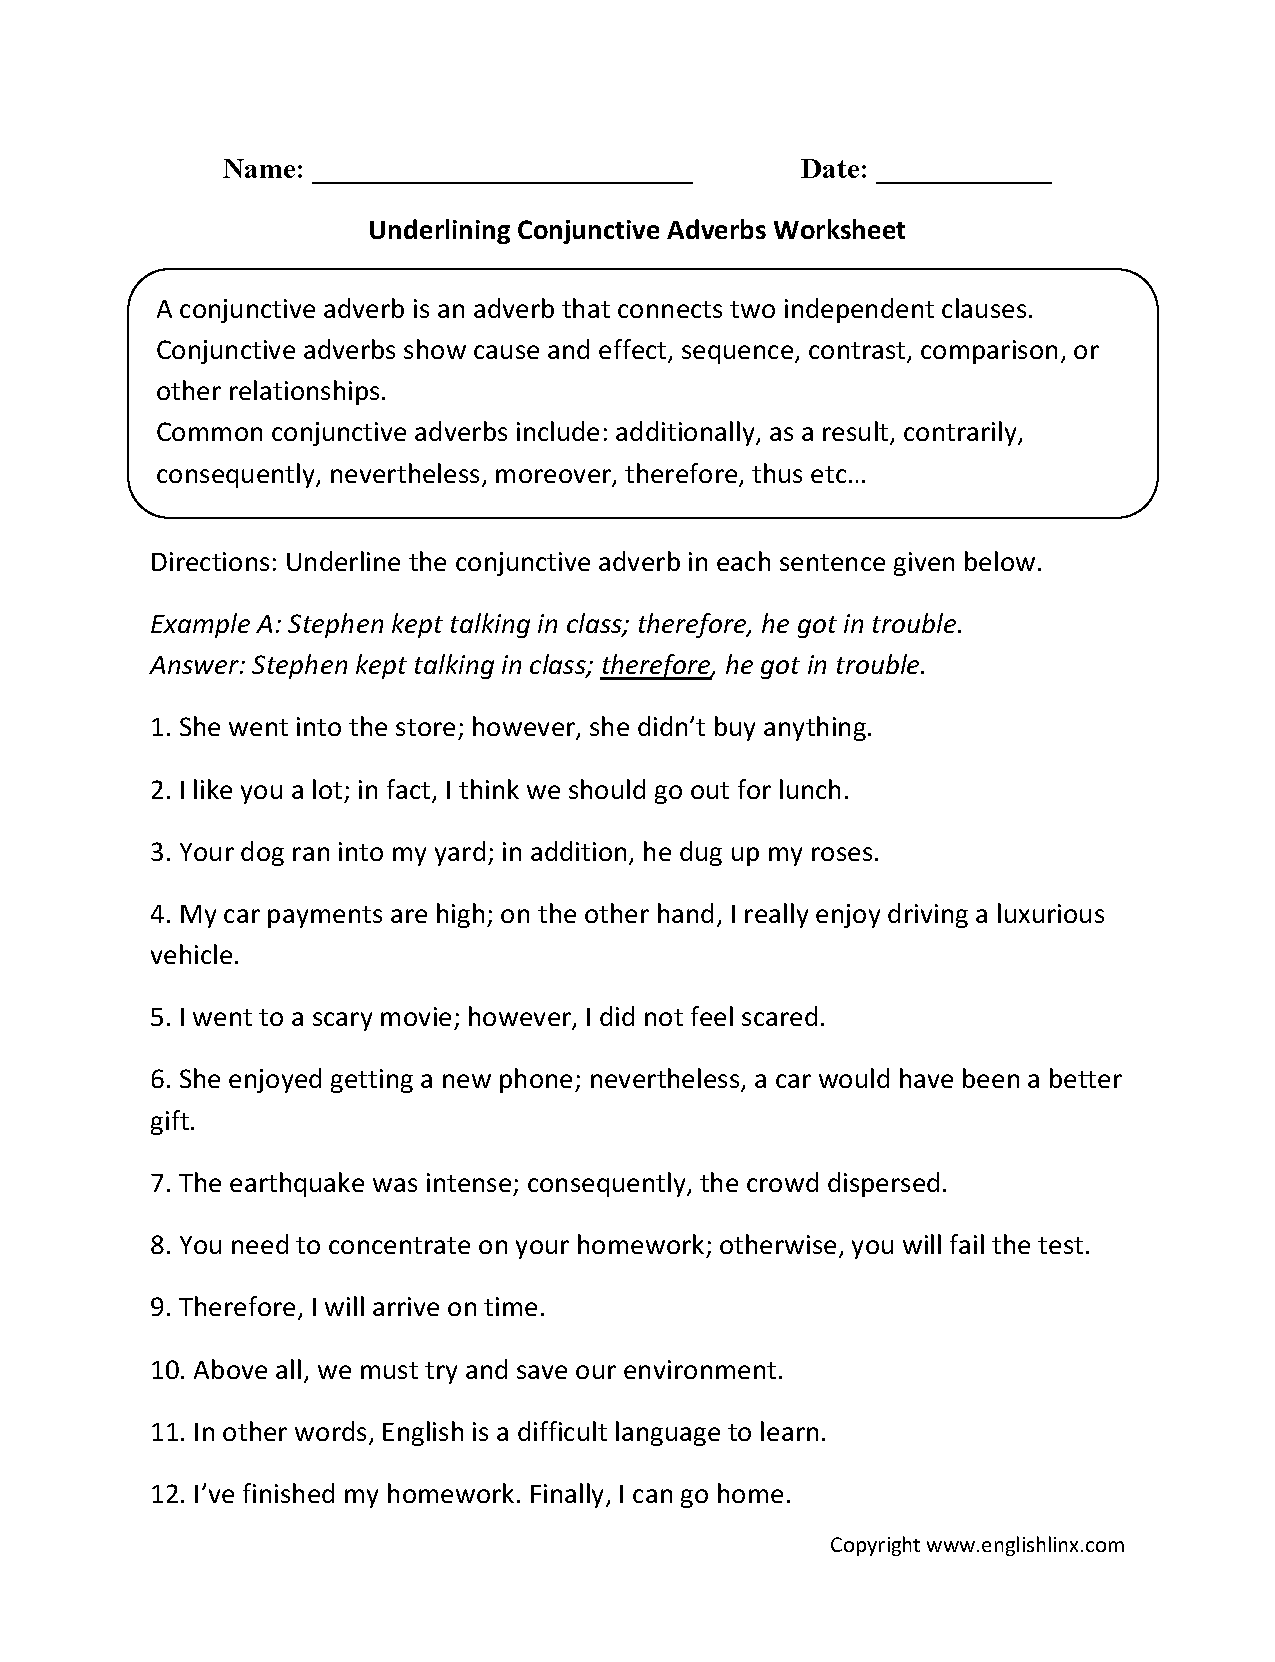 Weirdmailus  Terrific Englishlinxcom  Conjunctions Worksheets With Goodlooking Worksheet With Alluring Free Cursive Practice Worksheets Also Outdoor Education Worksheets In Addition Heat Conduction Worksheet And Count And Noncount Noun Worksheets As Well As Different Types Of Nouns Worksheet Additionally  Times Table Test Worksheet From Englishlinxcom With Weirdmailus  Goodlooking Englishlinxcom  Conjunctions Worksheets With Alluring Worksheet And Terrific Free Cursive Practice Worksheets Also Outdoor Education Worksheets In Addition Heat Conduction Worksheet From Englishlinxcom